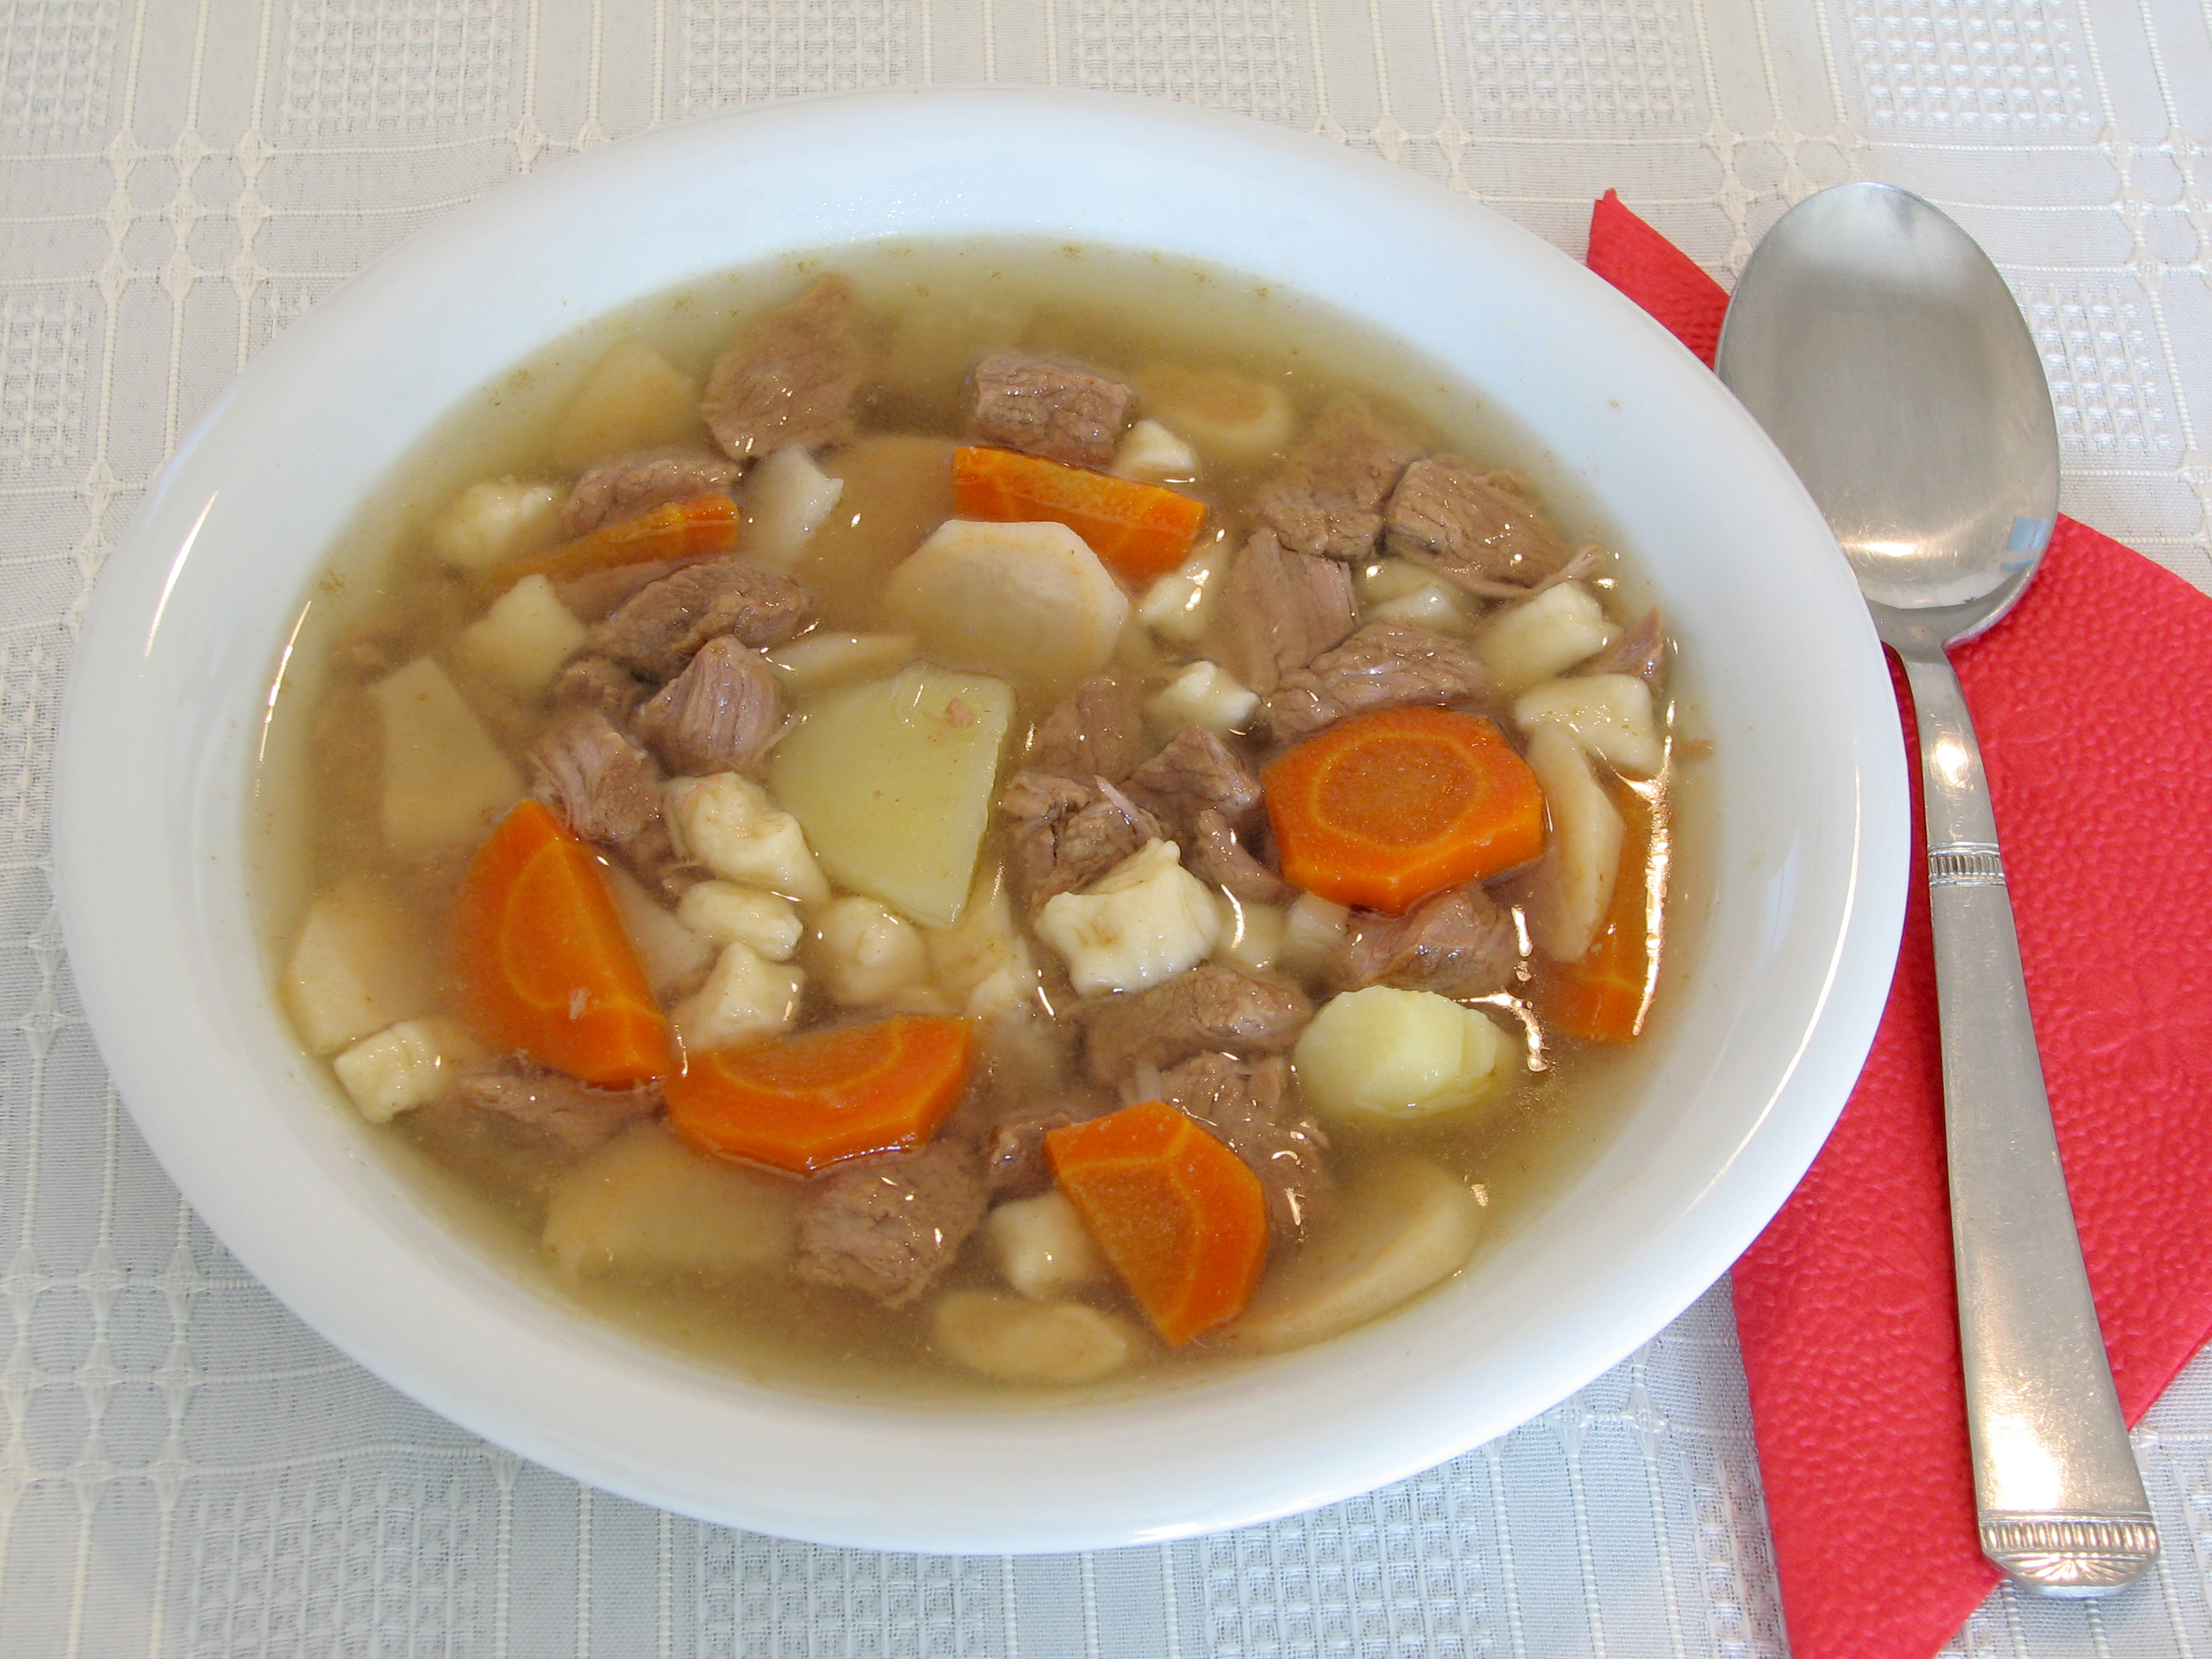 File:Hungarian goulash soup.jpg - Wikimedia Commons